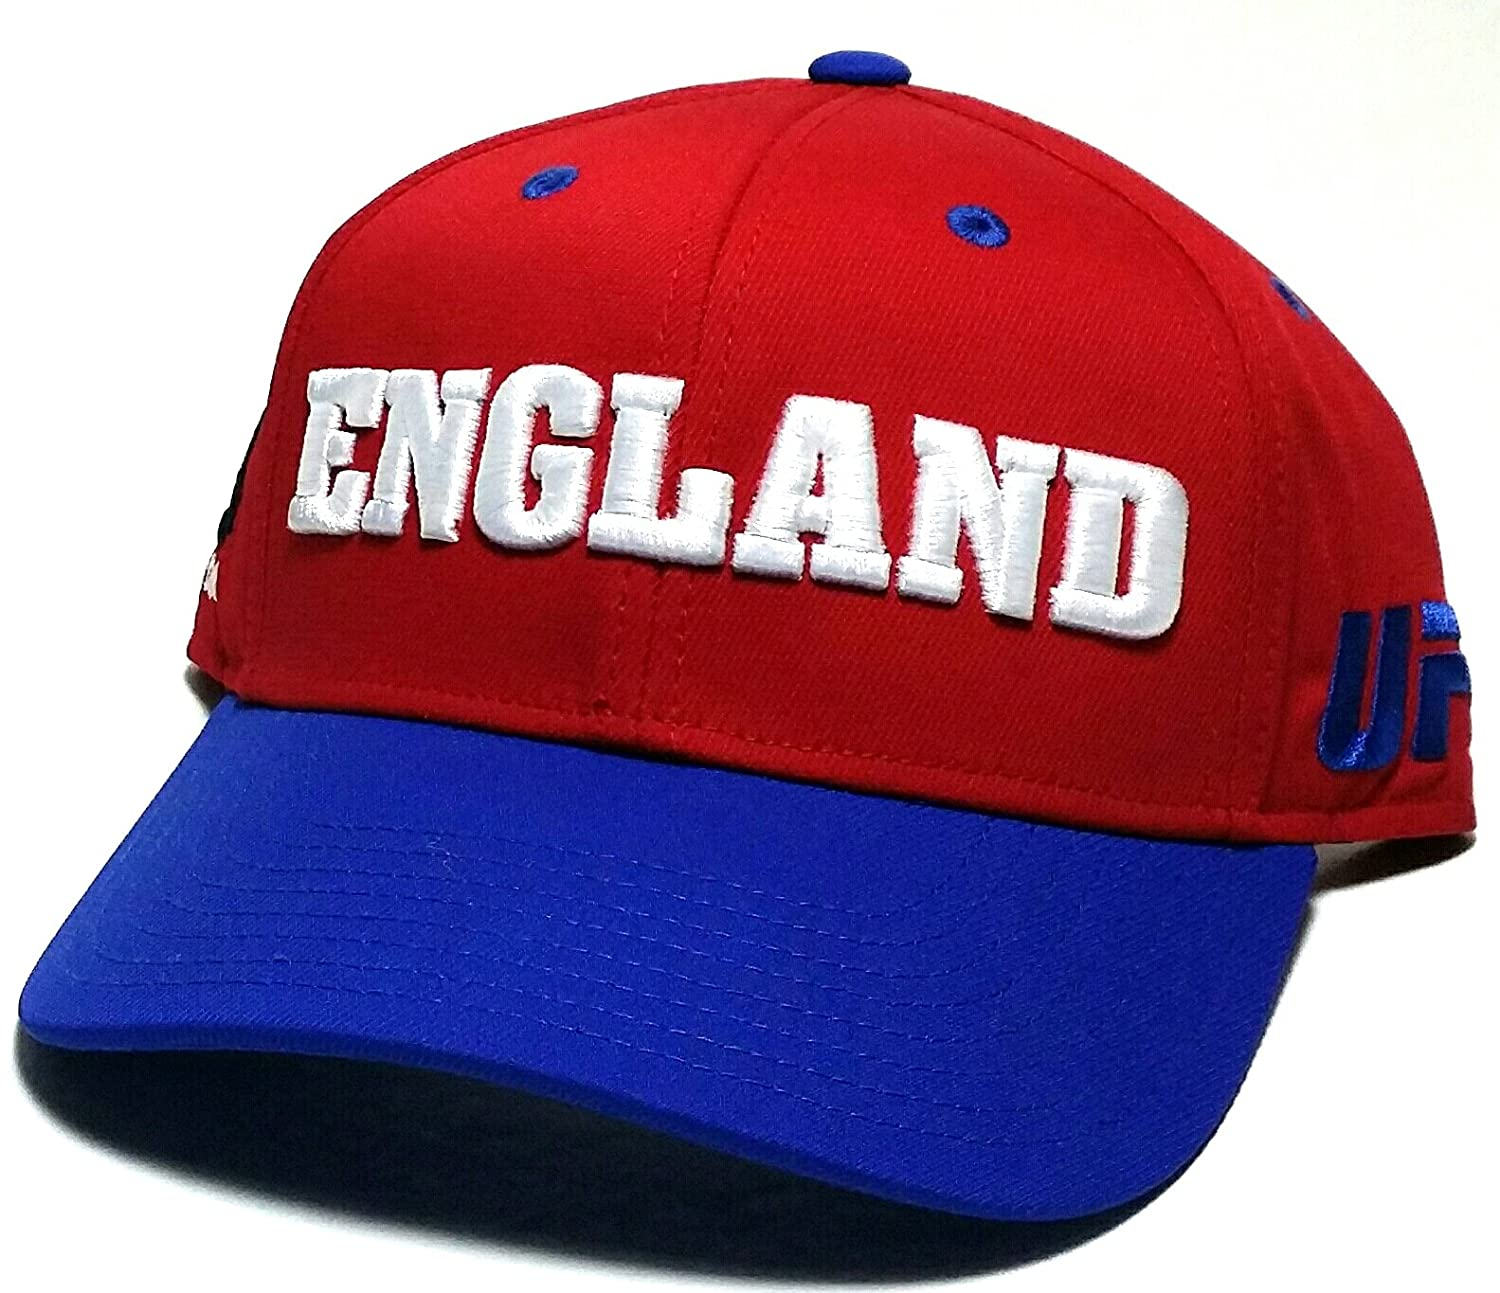 f1e3790e9b9f11 Amazon.com : UFC Reebok MMA Red White Blue England UK Country Pride  Adjustable Snapback Hat Cap : Sports & Outdoors